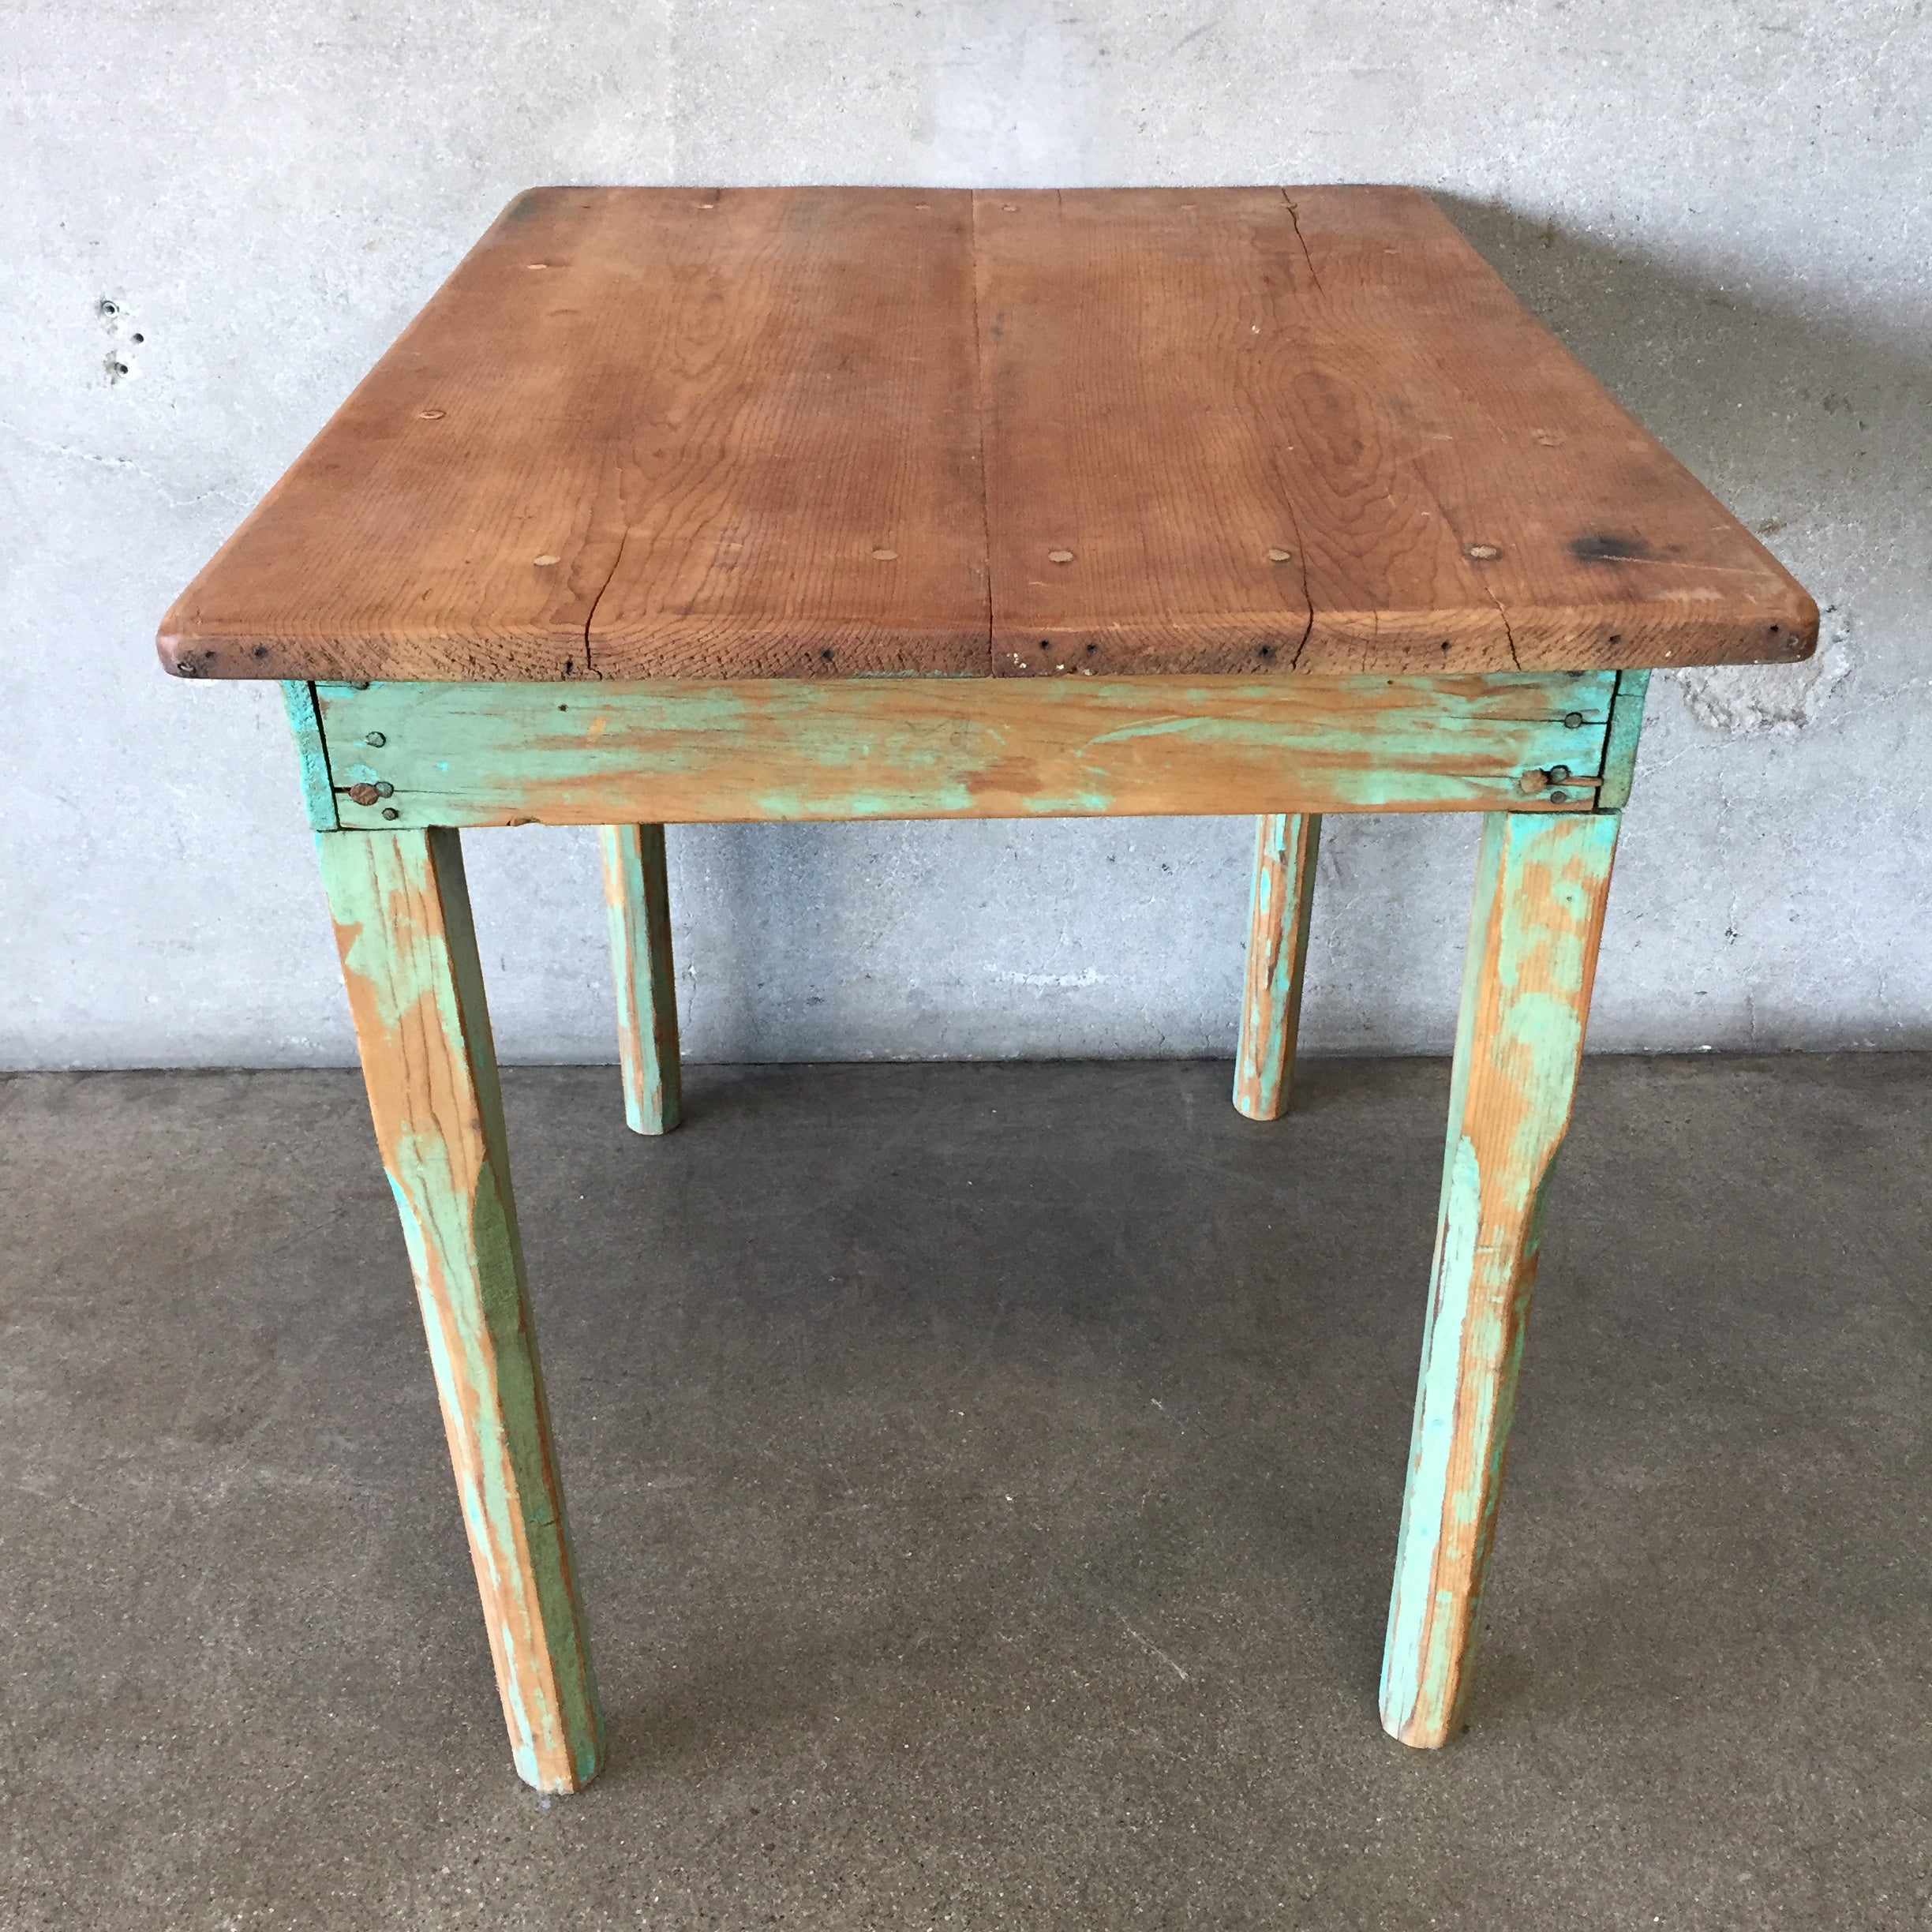 Marvelous Vintage Green Rustic Mexican Wood Table Bralicious Painted Fabric Chair Ideas Braliciousco